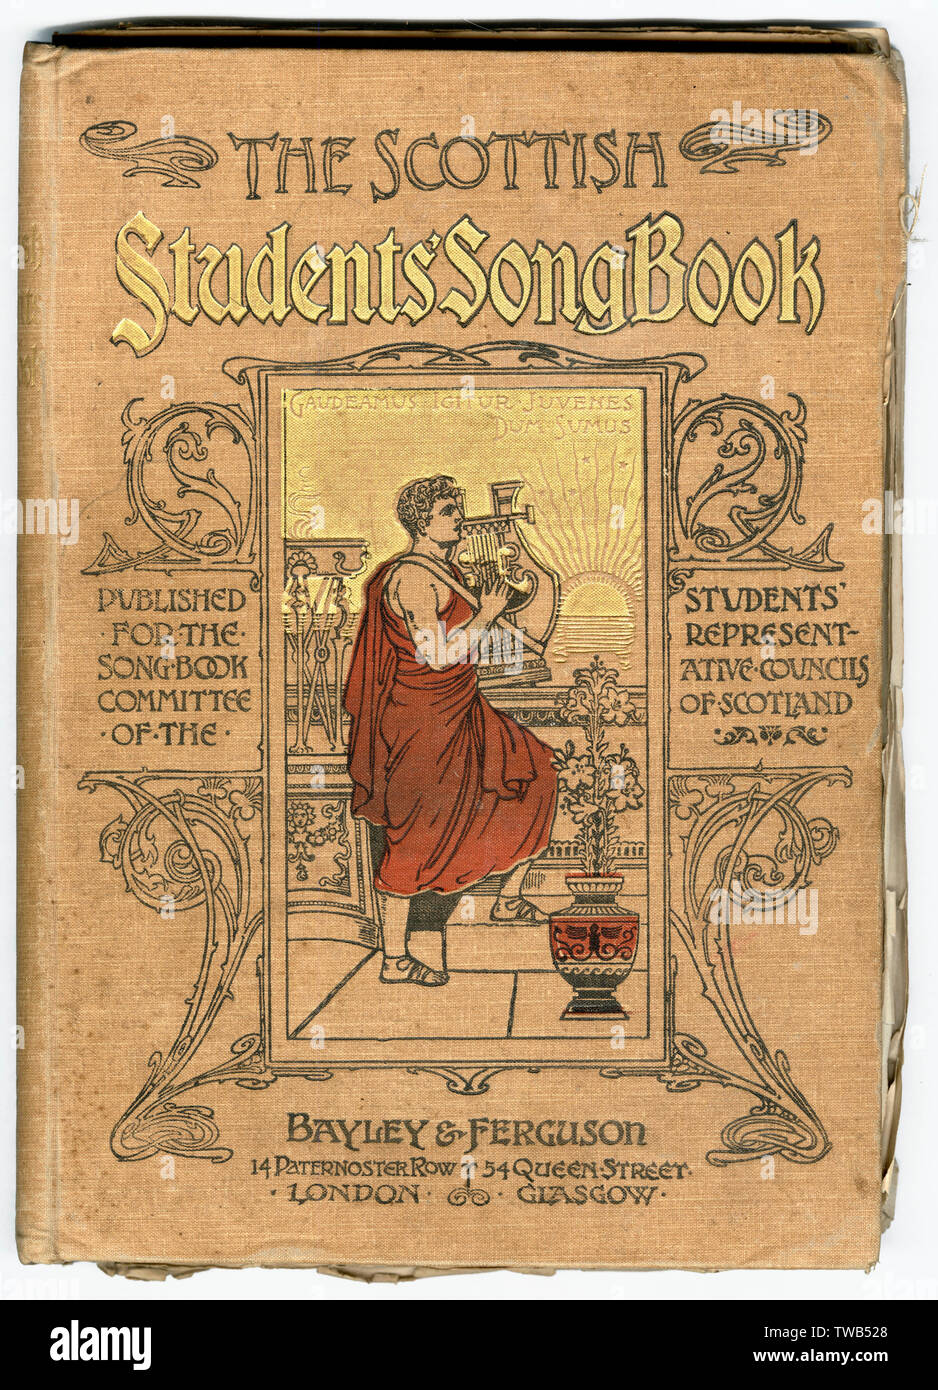 Front cover, The Scottish Students' Song Book, published for the Song Book Committee of the Students' Representative Councils of Scotland. With the Latin motto: Gaudeamus Igitur Juvenes Dum Sumus (Let us rejoice, therefore, while we are young).      Date: 1891 - Stock Image